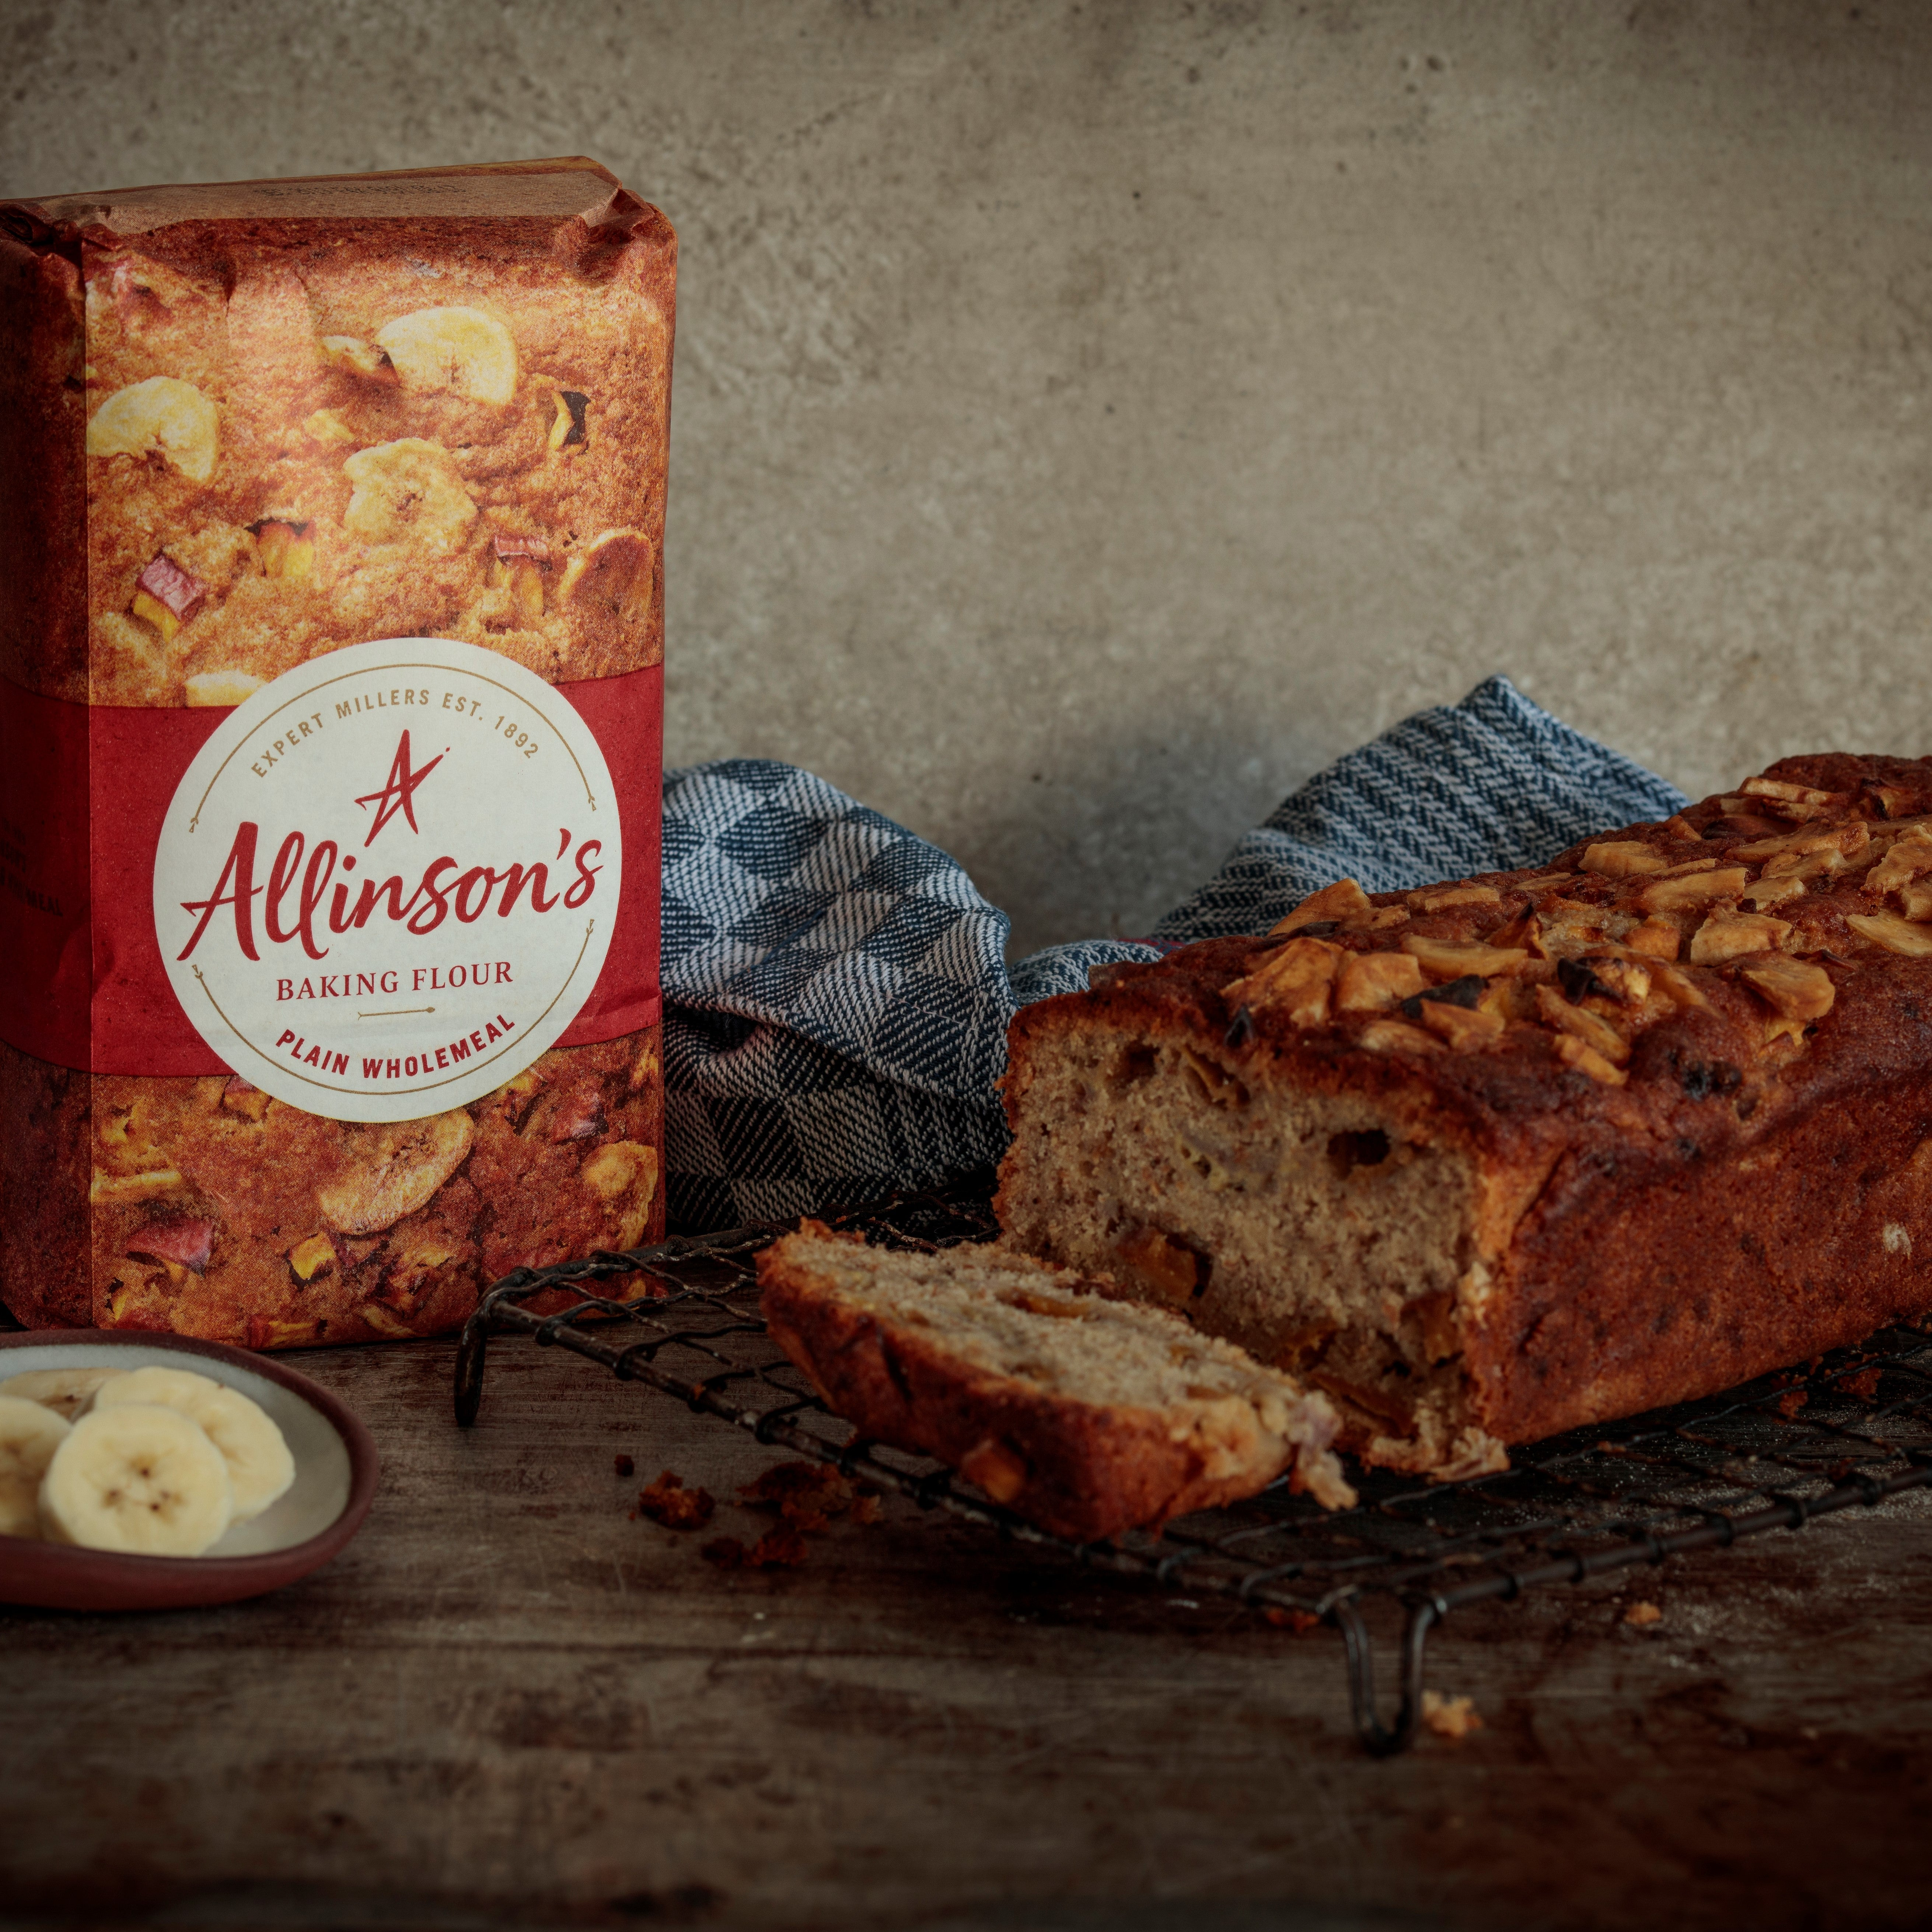 Banana-and-Peaches-Loaf-Allinson-s.jpg